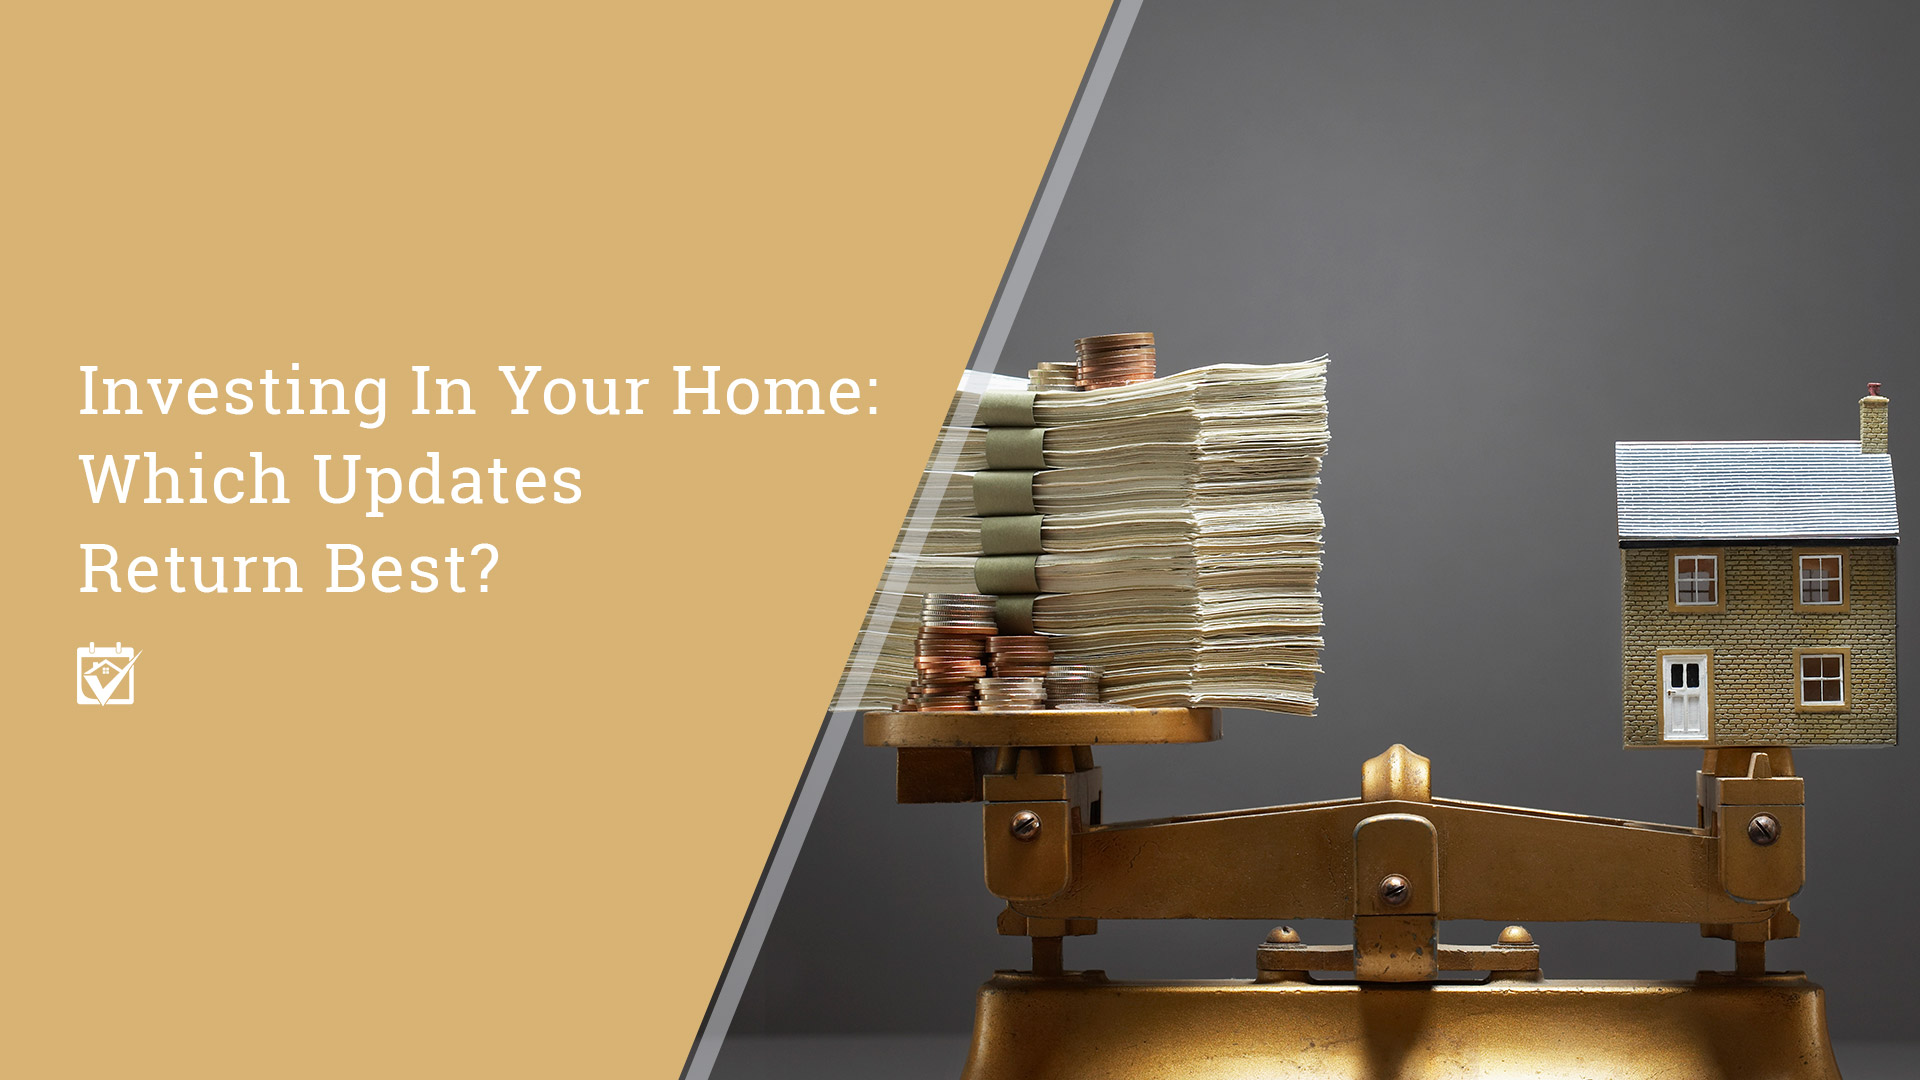 Investing In Your Home